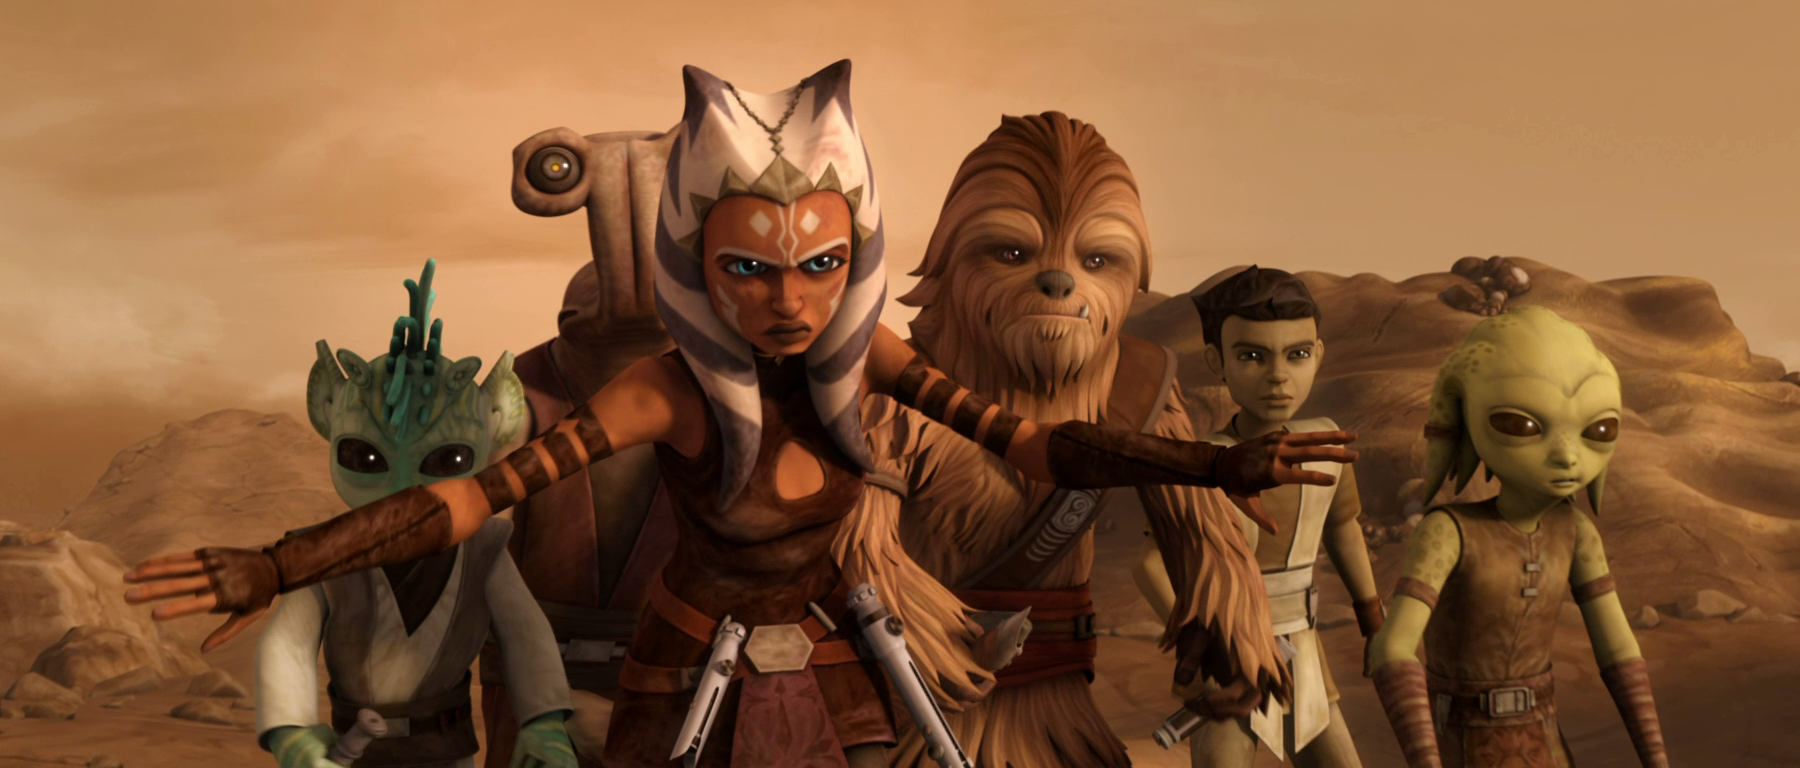 A Necessary Bond Wookieepedia Fandom Along with his fellow younglings, gungi staged a daring rescue of ahsoka, teaming up with hondo, and fighting general grievous in the process. a necessary bond wookieepedia fandom